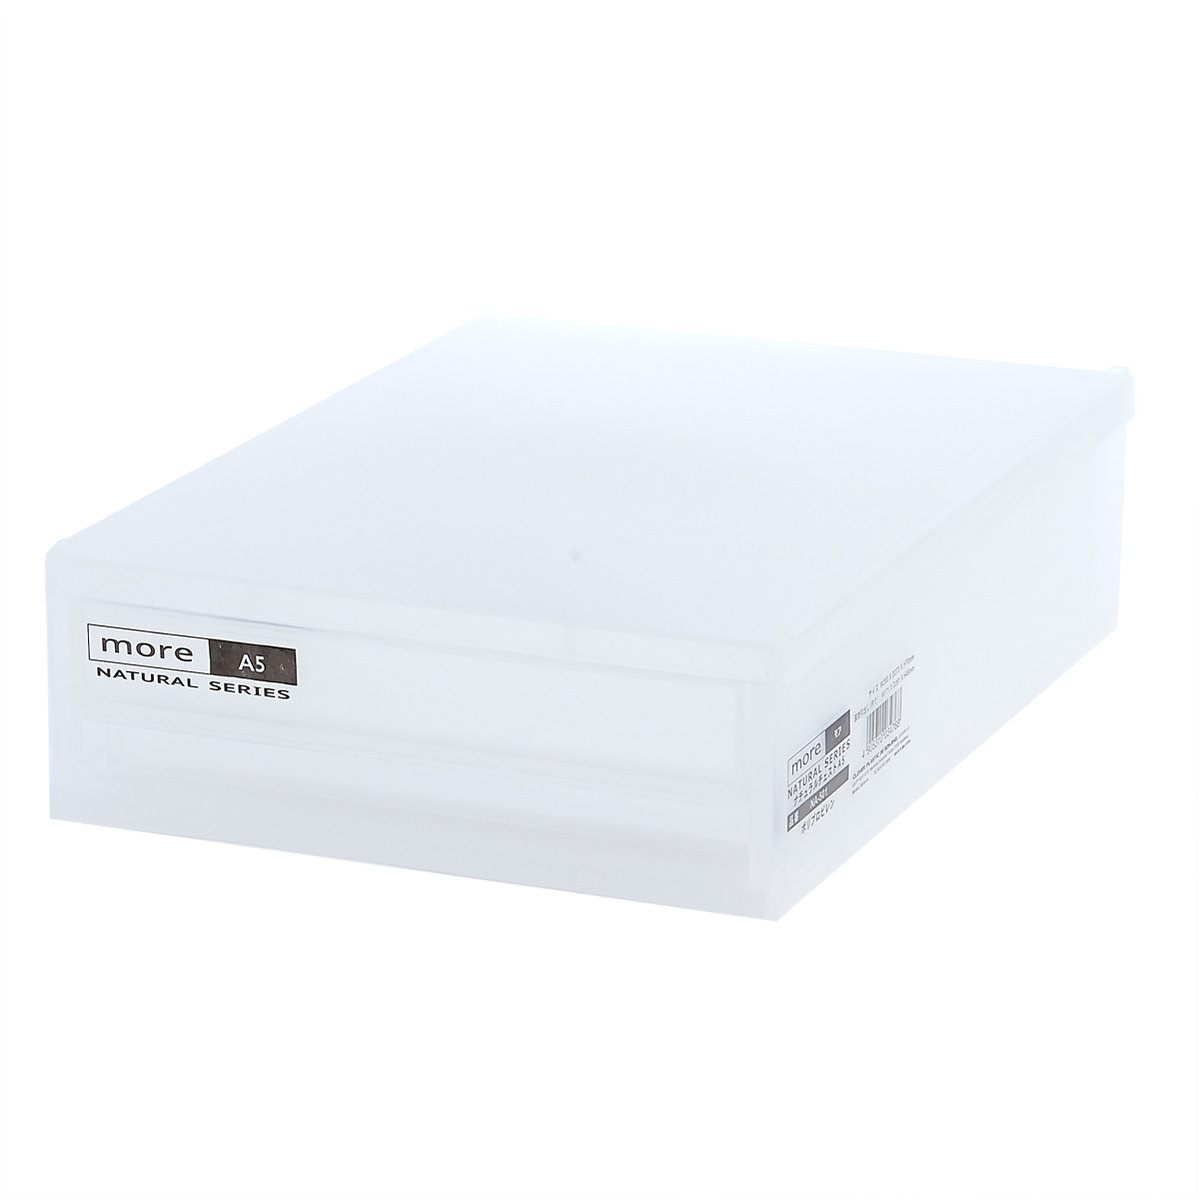 A5 Size Plastic Drawer (Shallow)